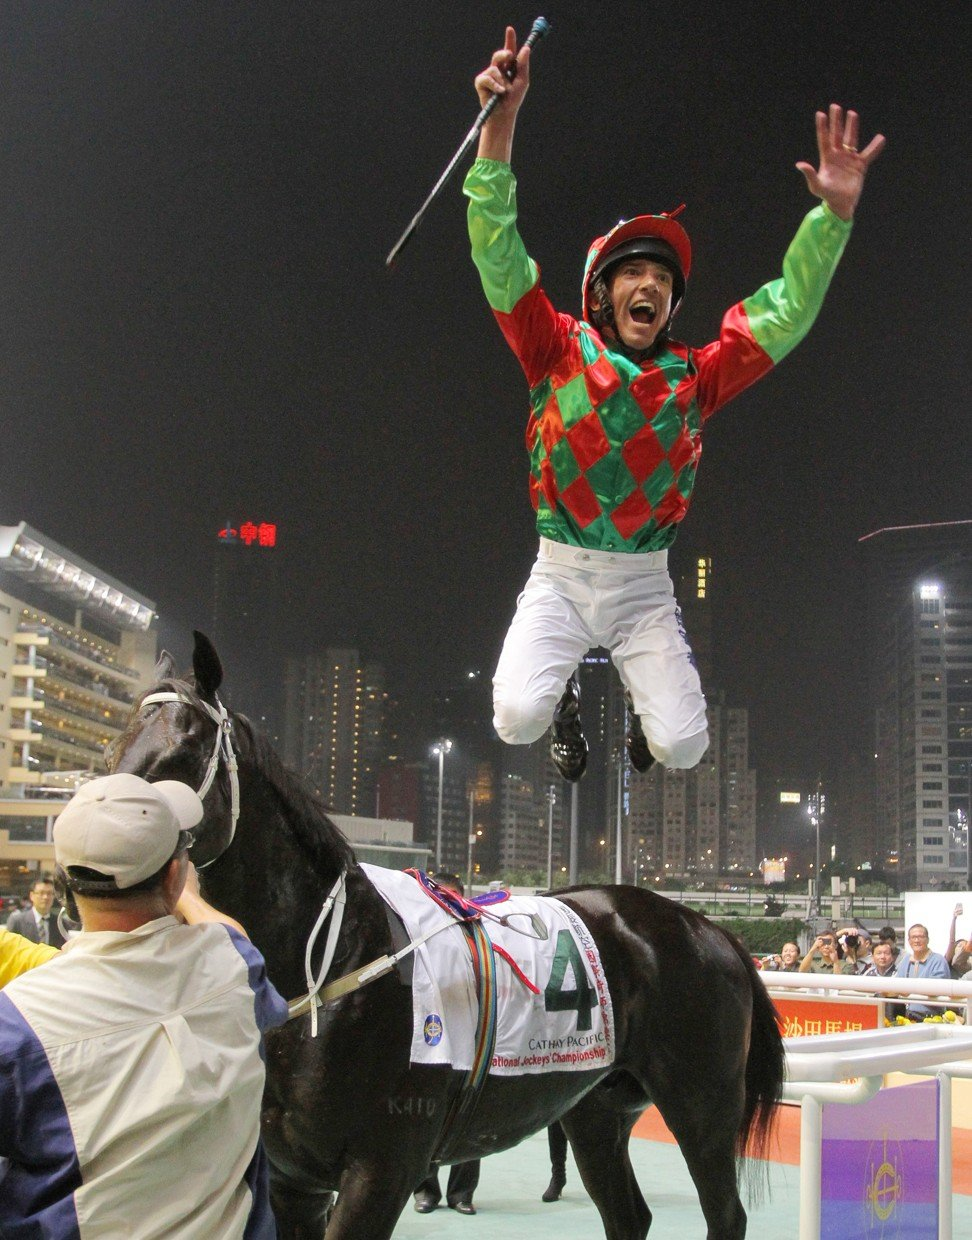 Frankie Dettori performs the flying dismount after winning his third IJC title in 2011.